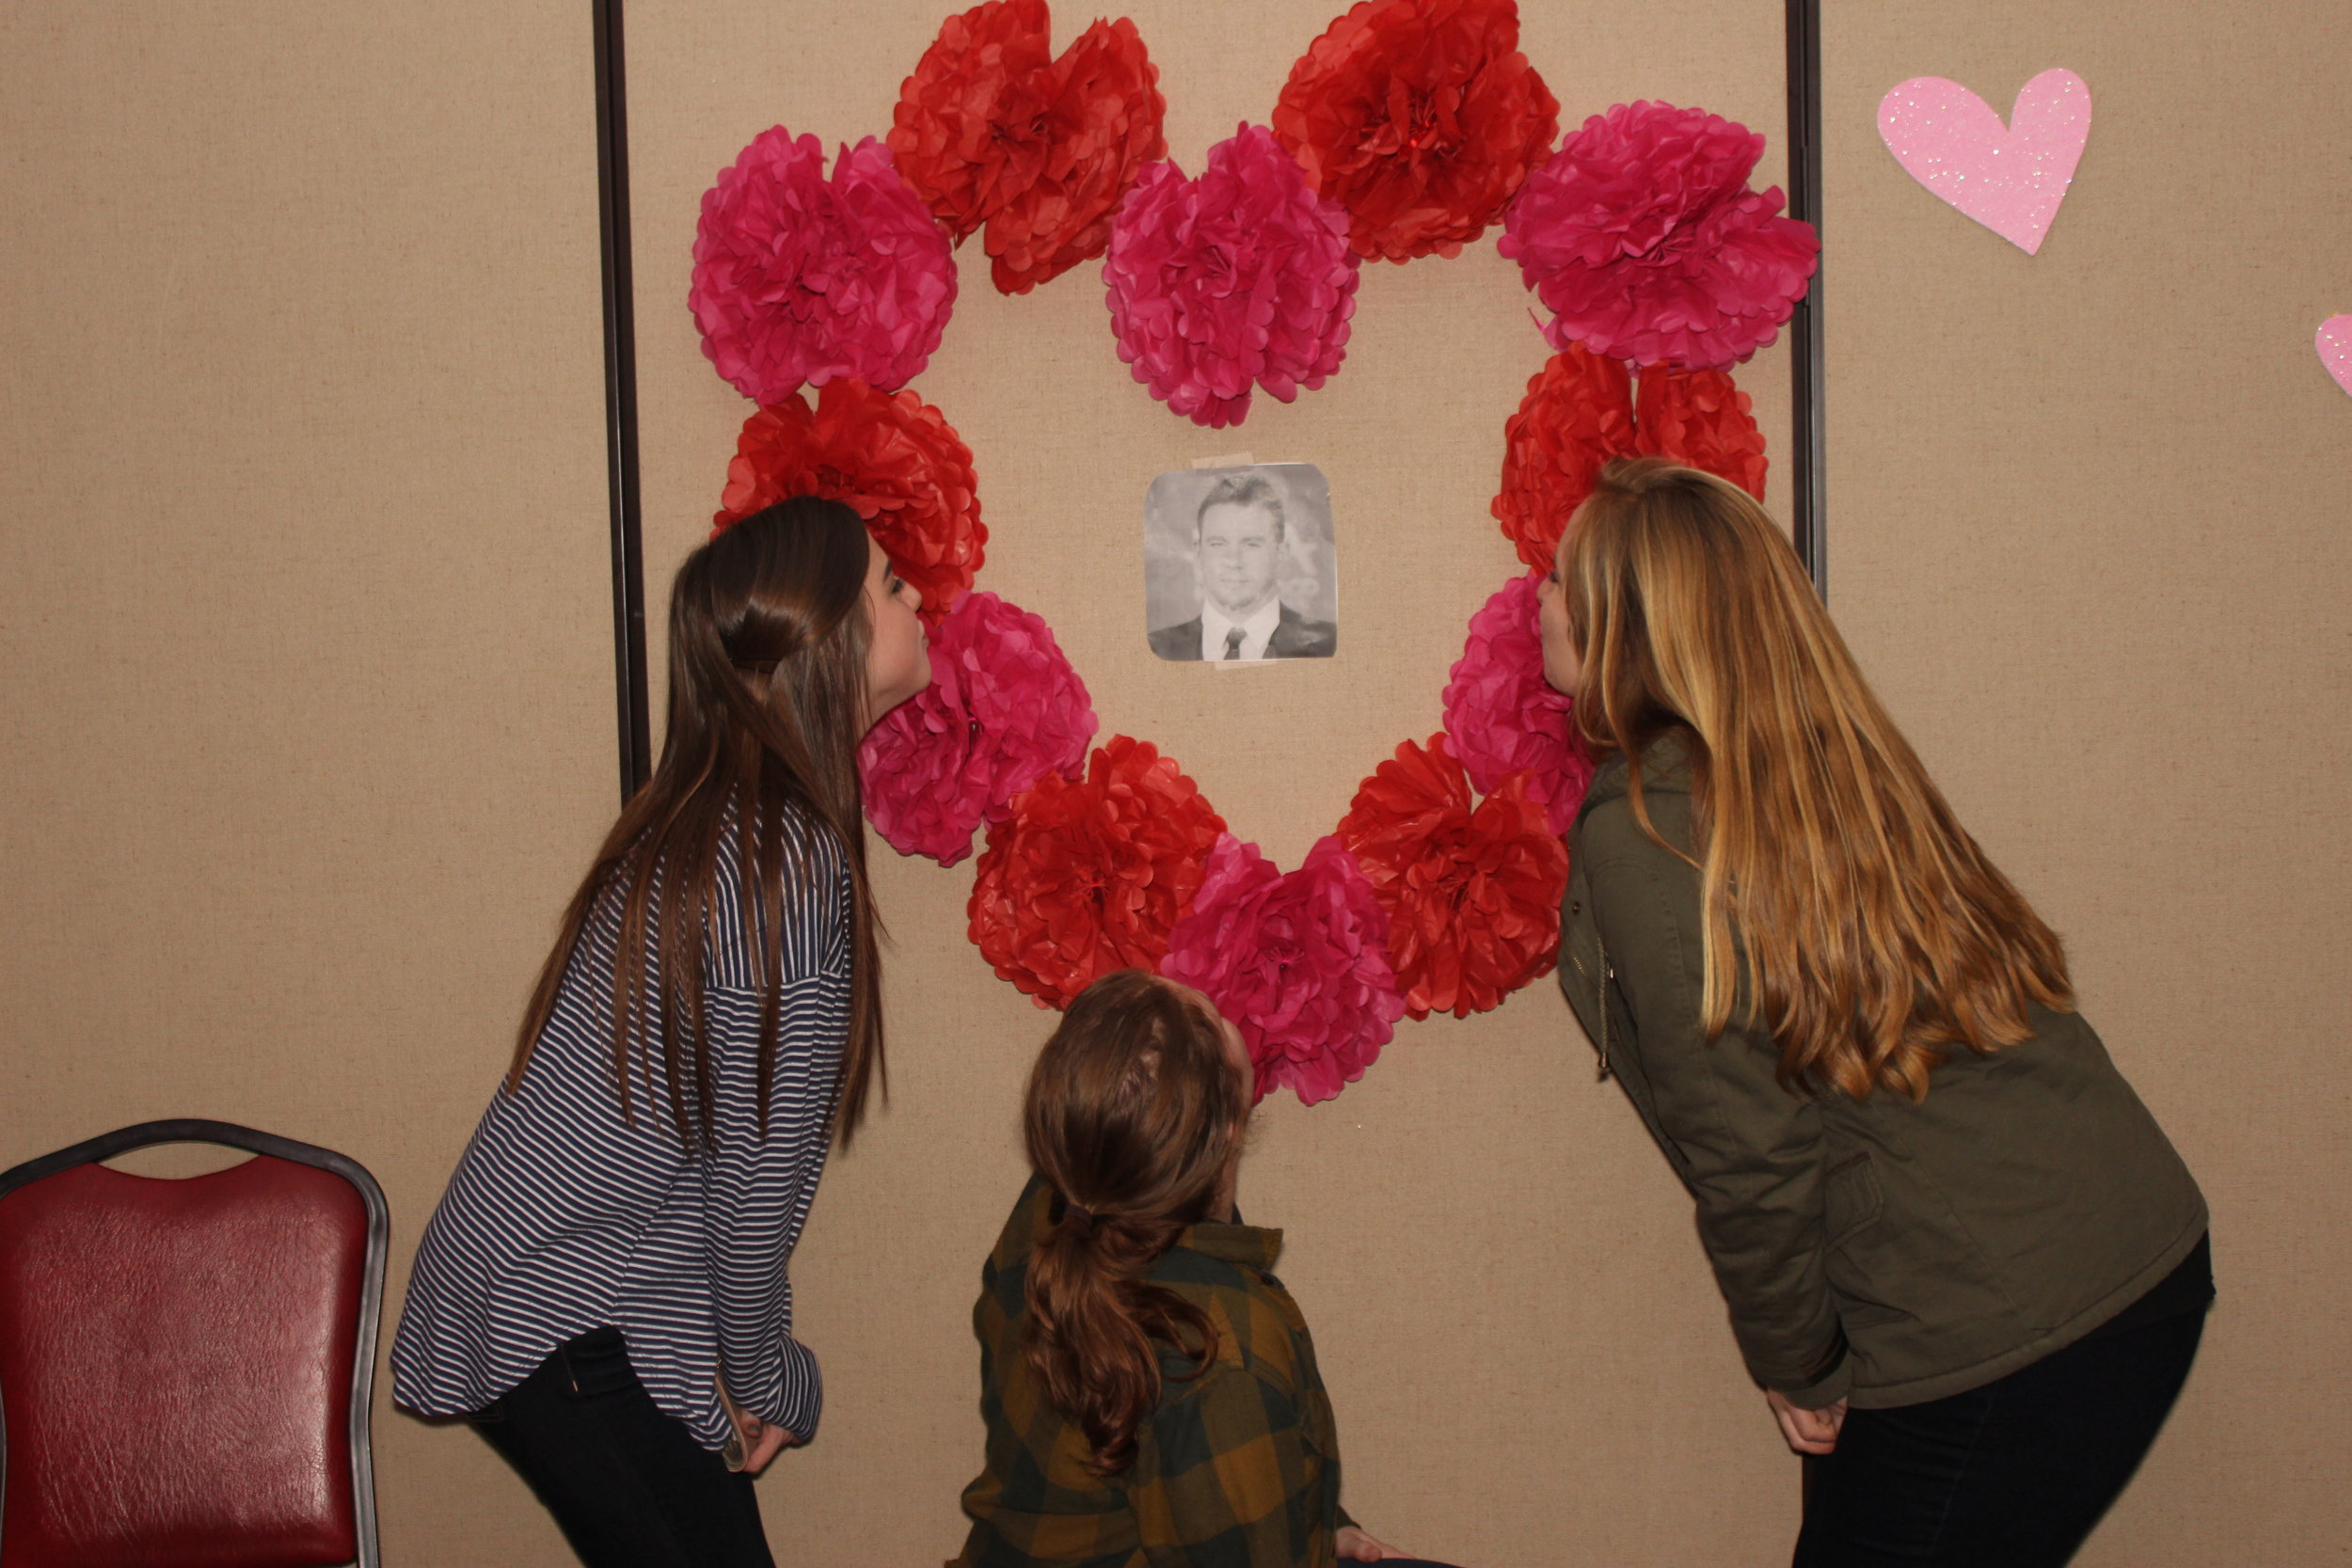 Junior Mary Margaret Shelley and sophomores Allysa Yeater and Sarah Byrd enjoyi the scenery at the Galentines event.